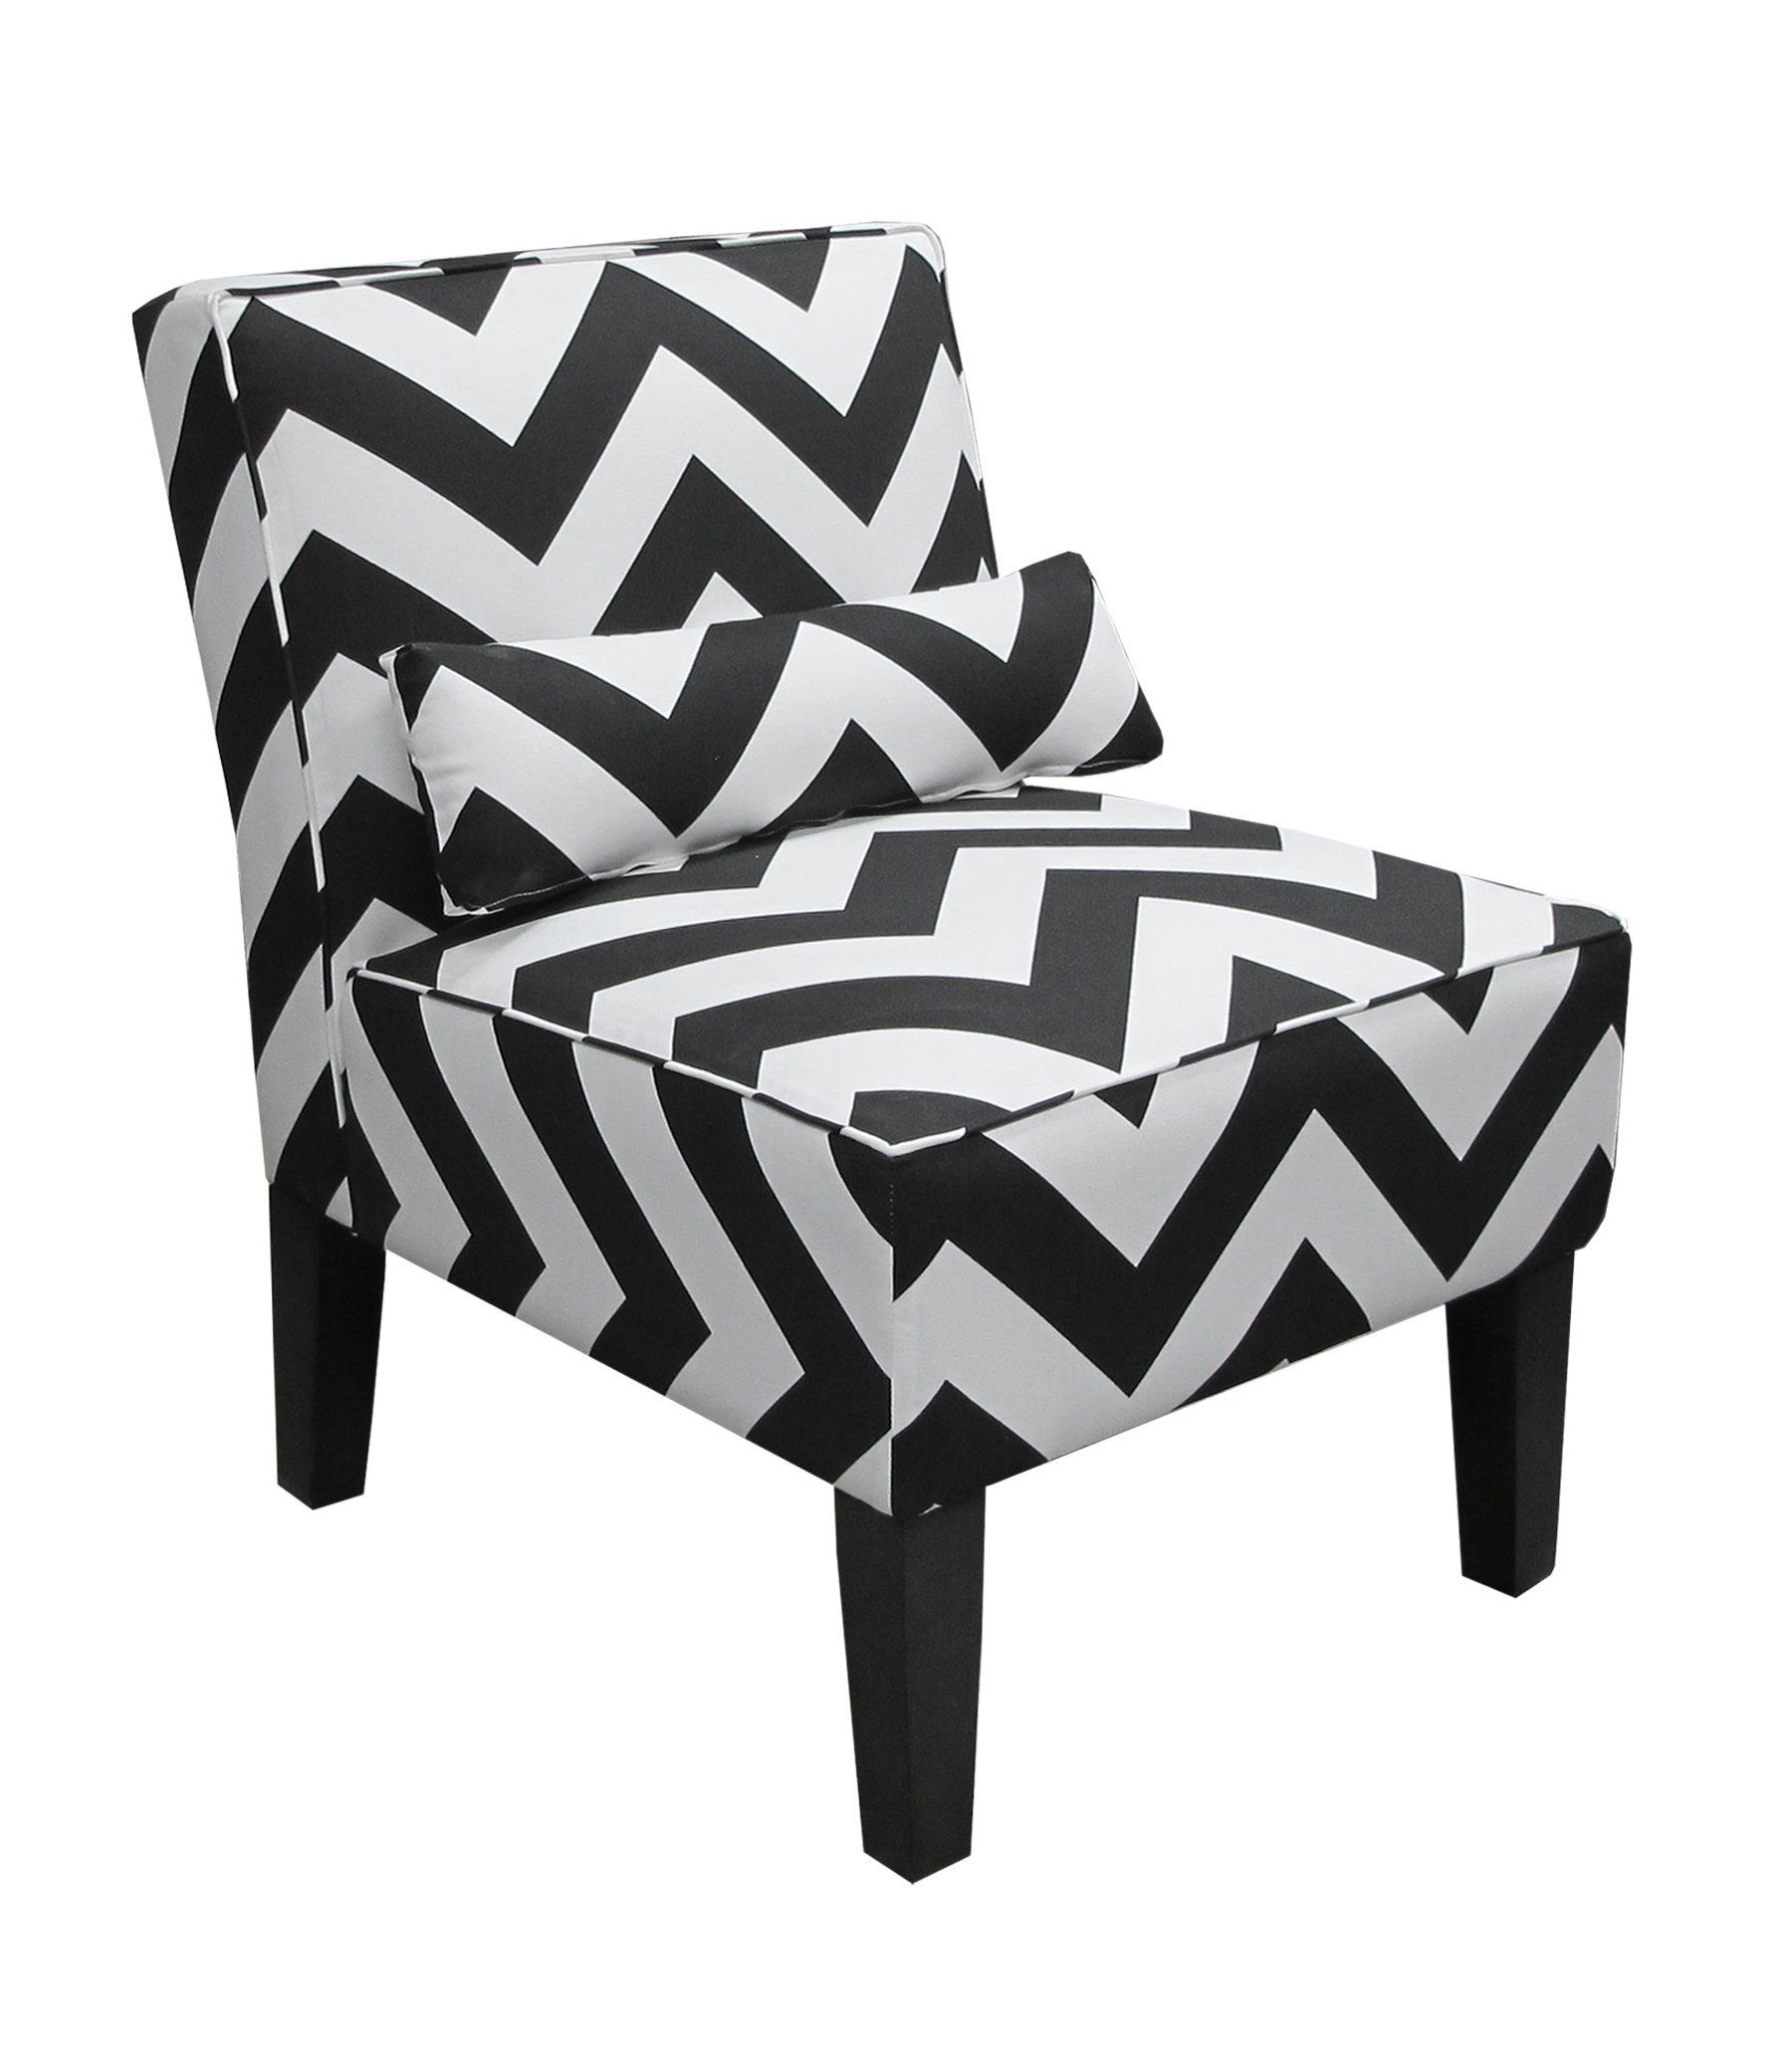 Astonishing Skyline Furniture Armless Chair In Zig Zag Black And White Short Links Chair Design For Home Short Linksinfo